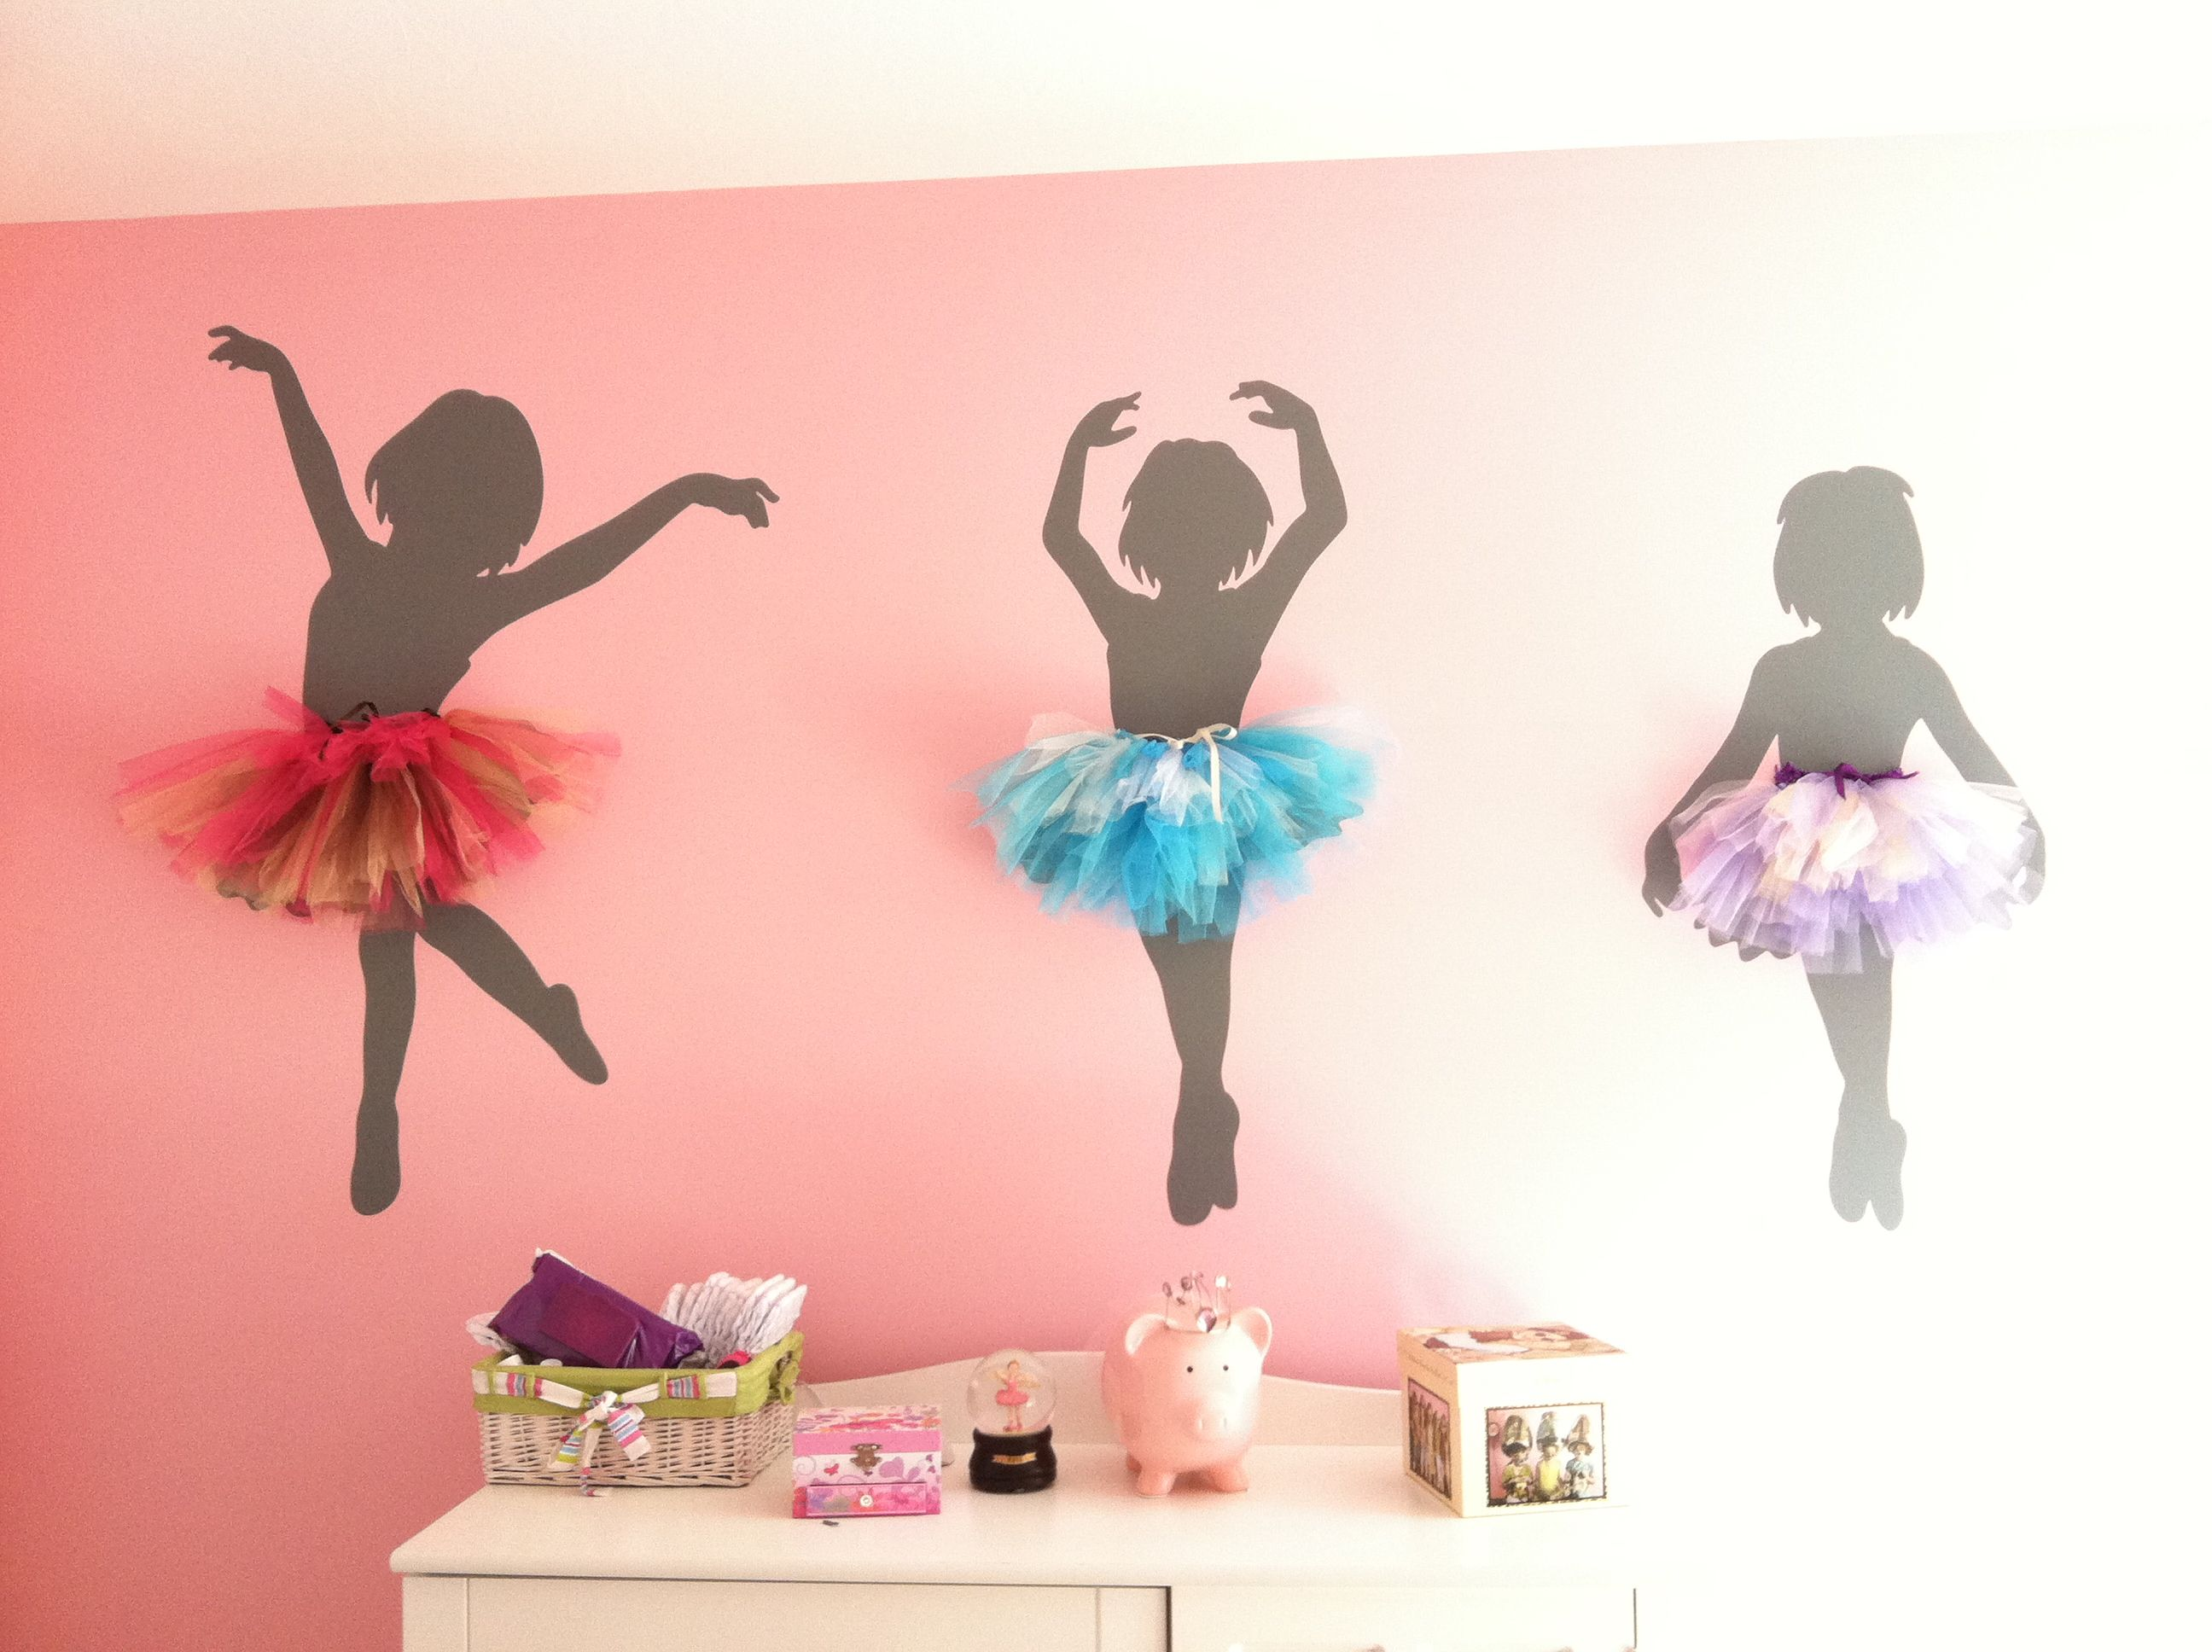 Ballerina Wall Decor Attached Tutus To Wall Decals With